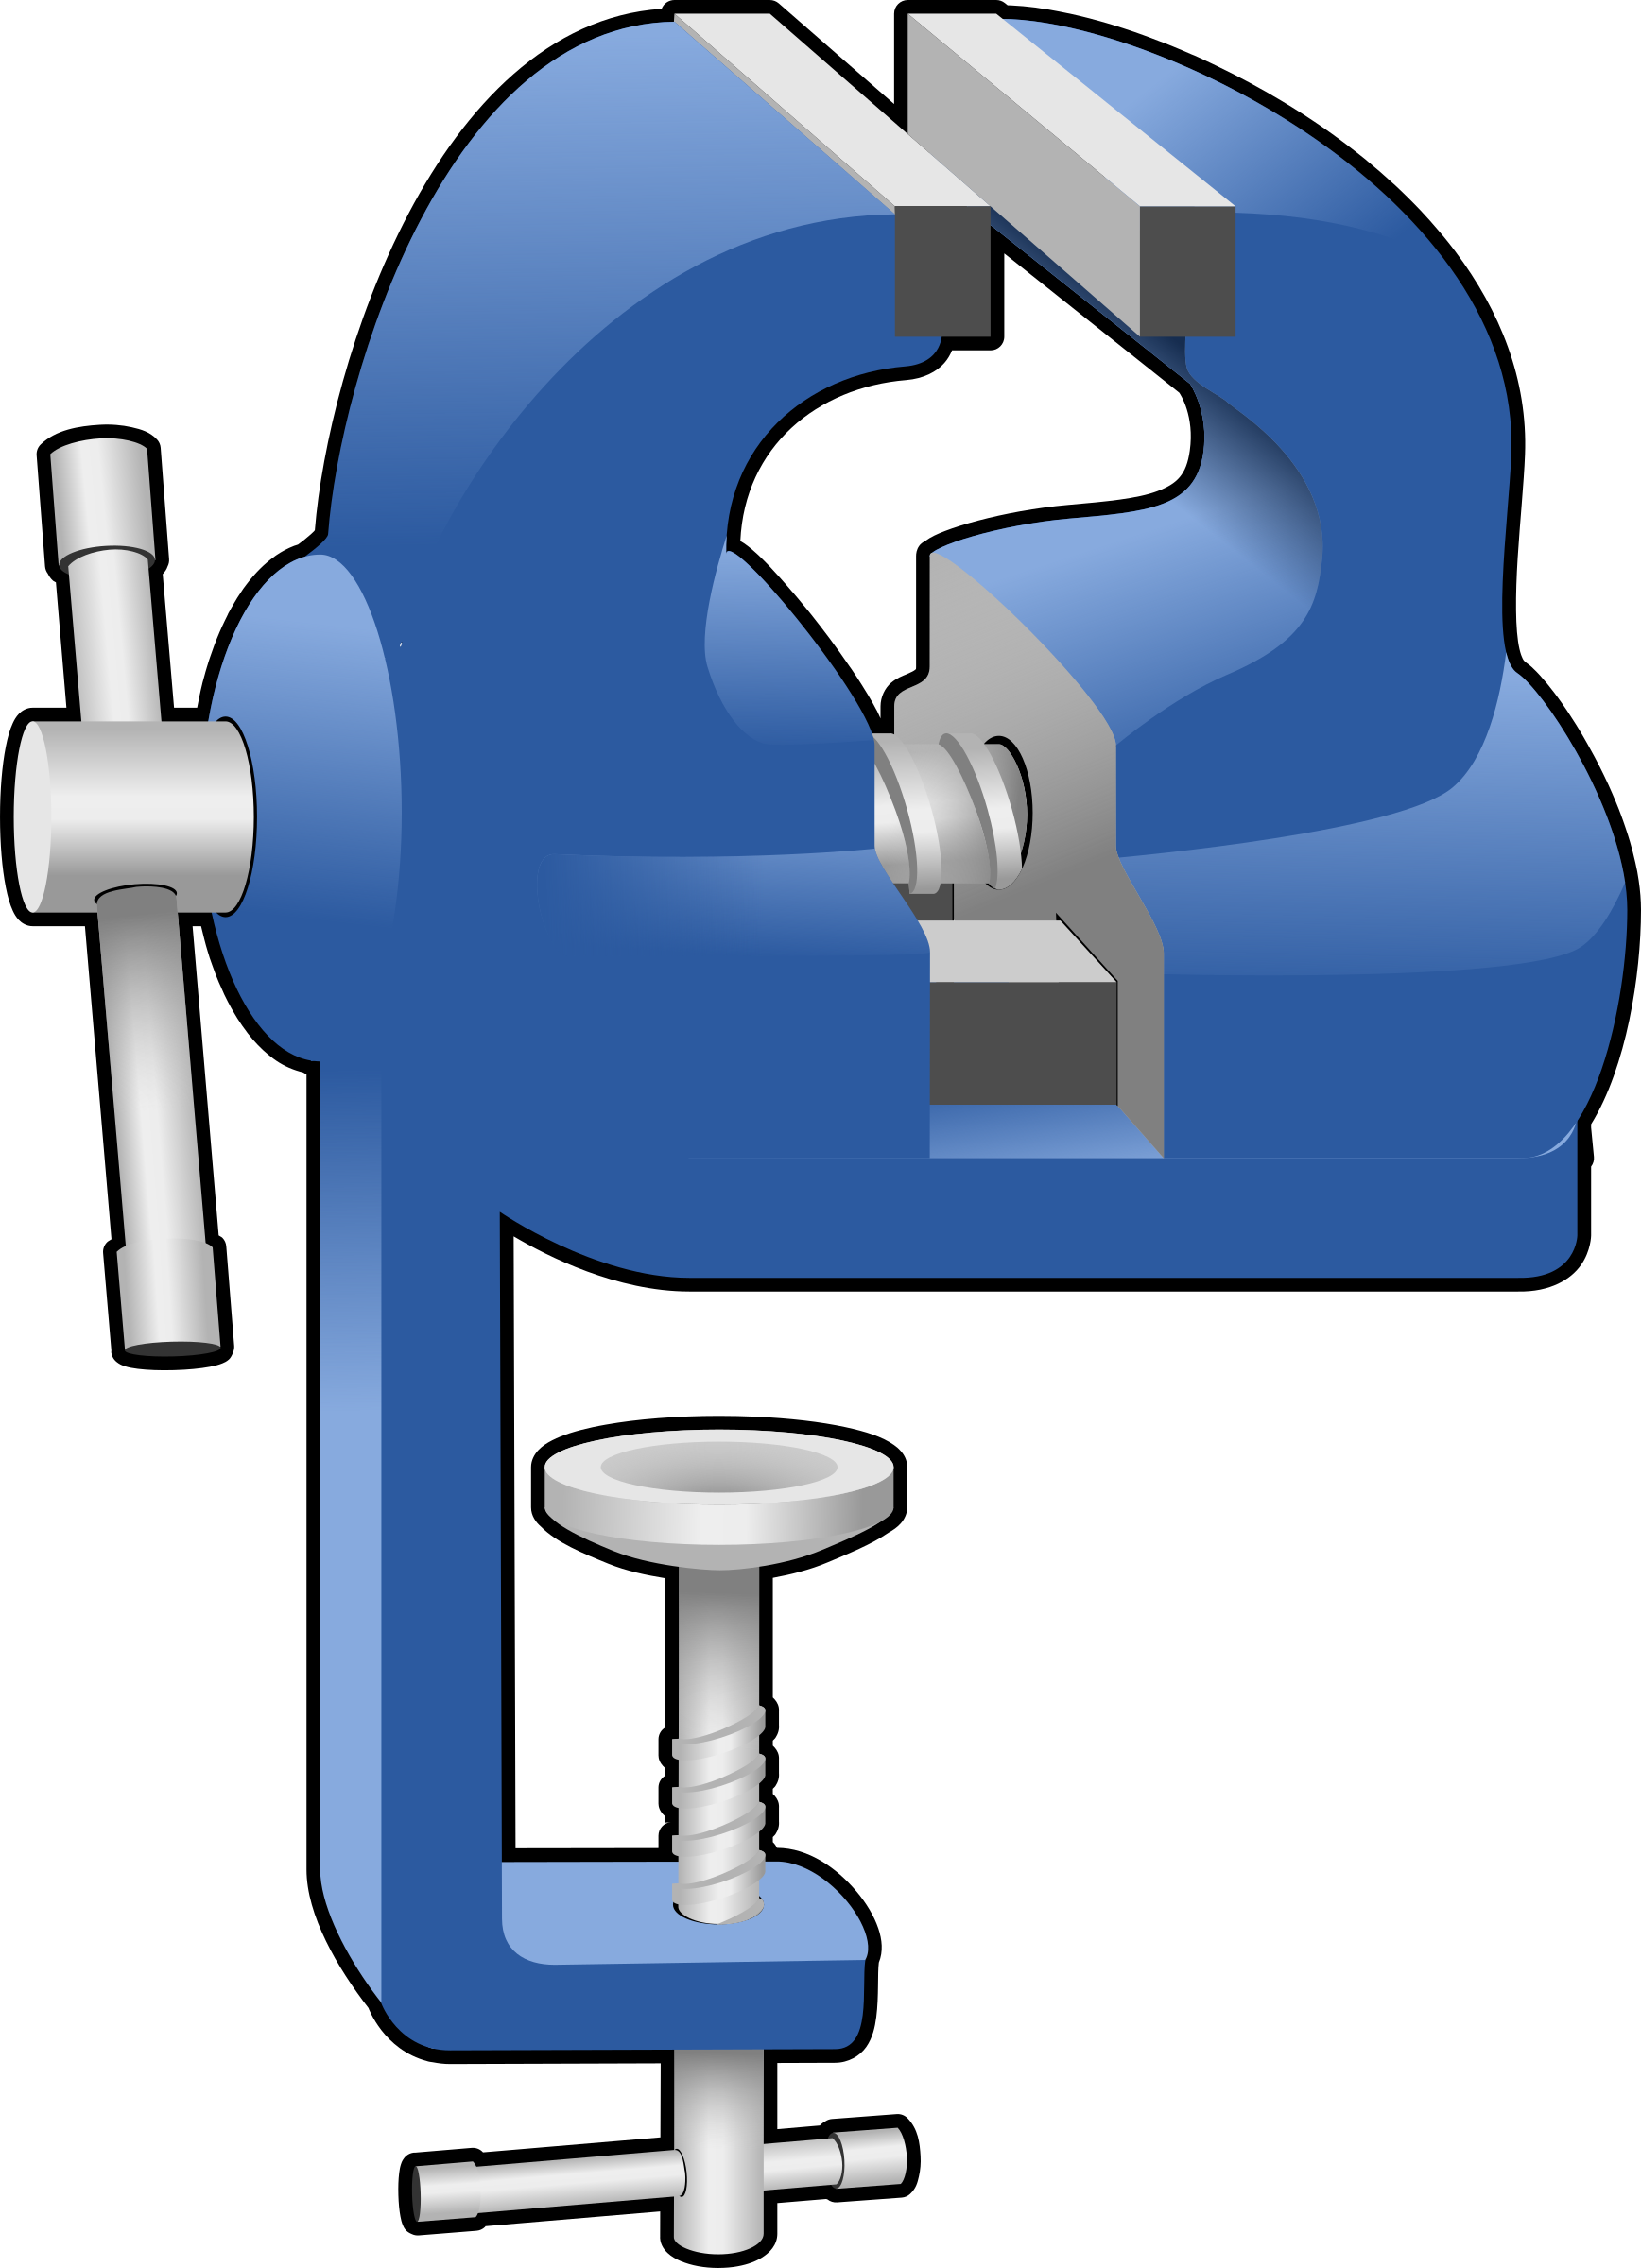 Engineer clipart icon. S vise icons png